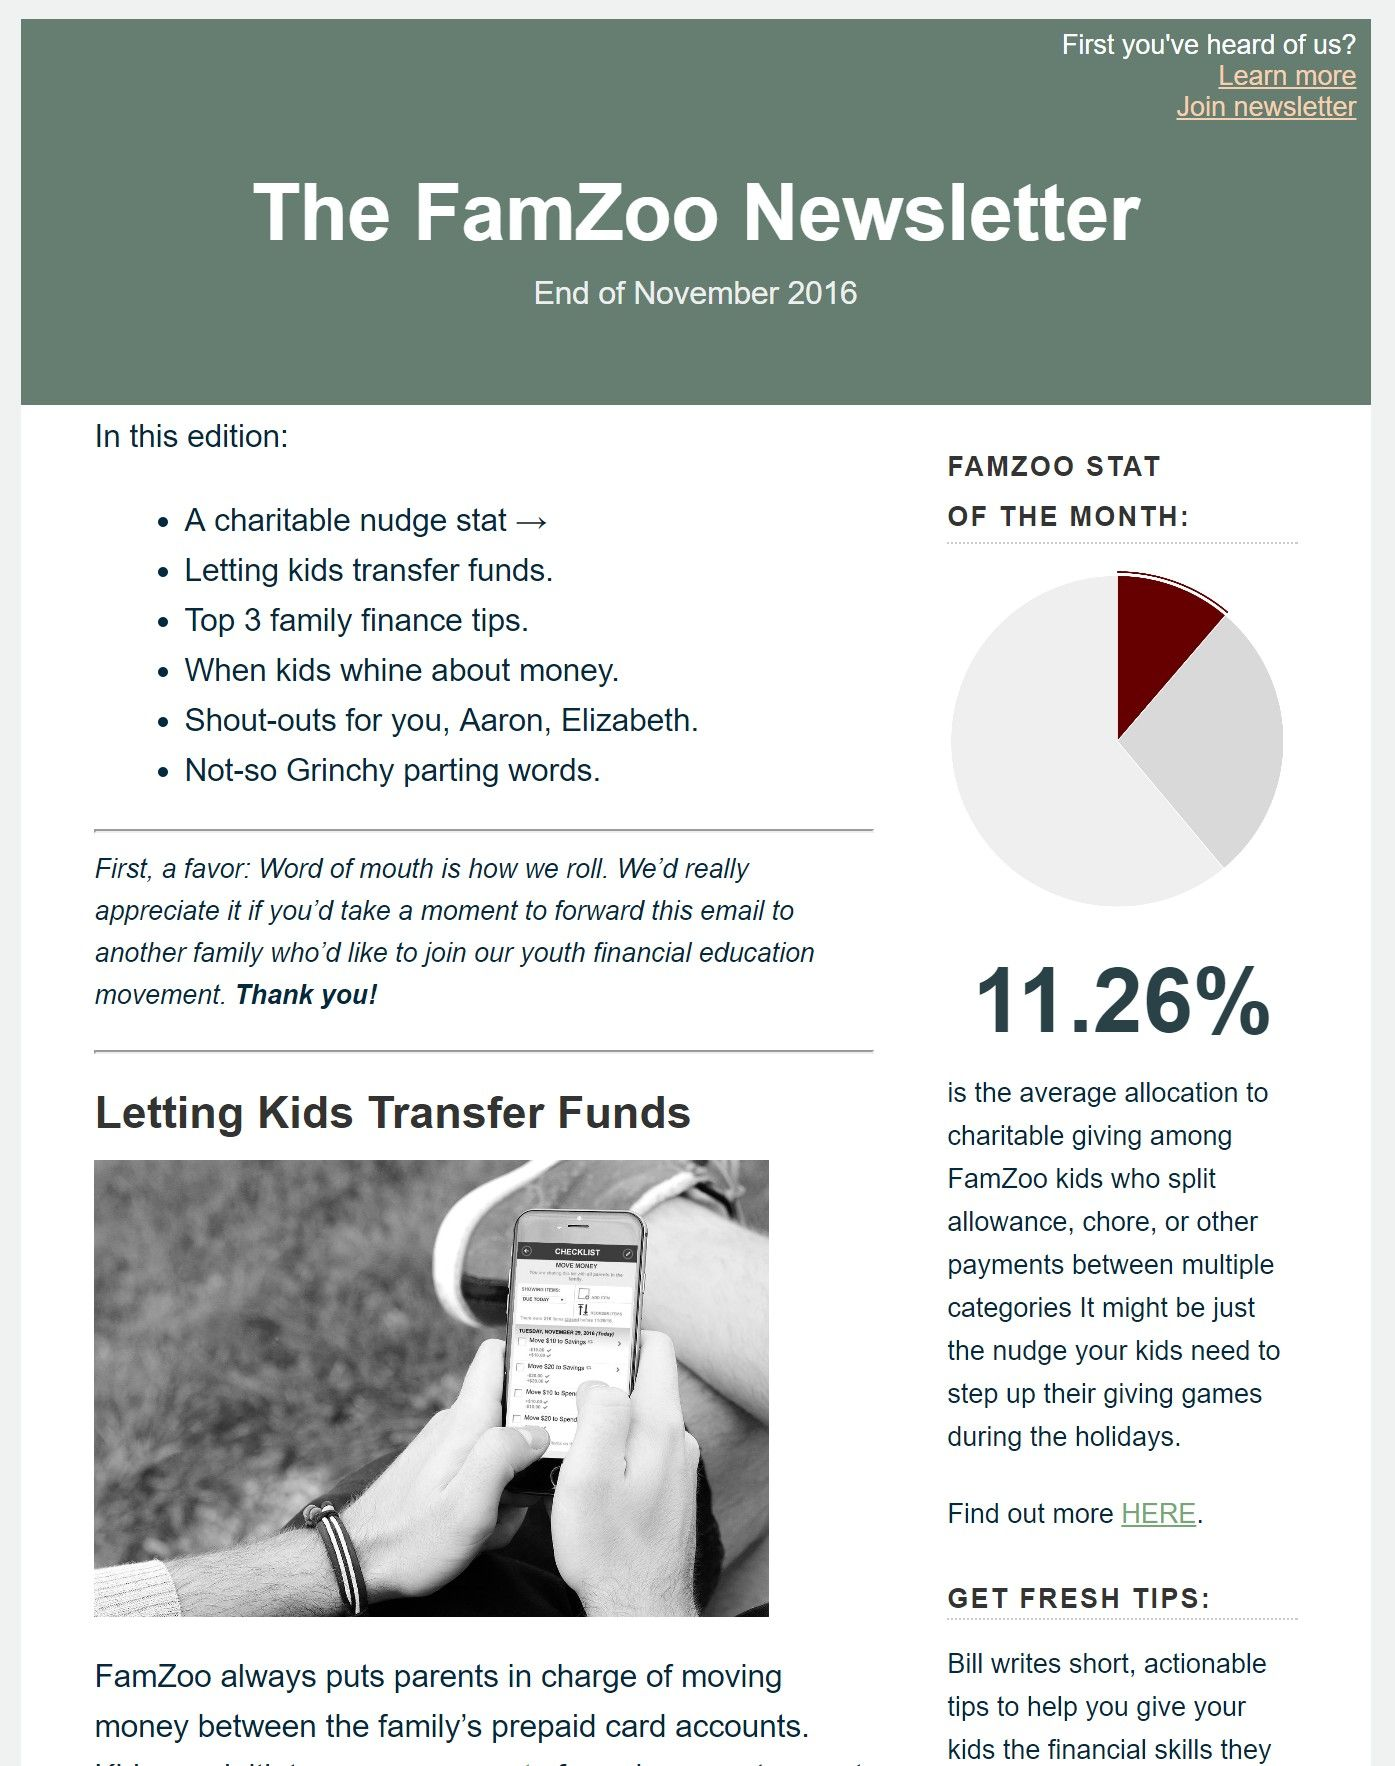 End of November 2016 newsletter: a charitable nudge stat; letting kids transfer funds; top 3 family finance tips; when kids whine about money; shout-outs for you, Aaron, and Elizabeth; and not-so Grinchy parting words.